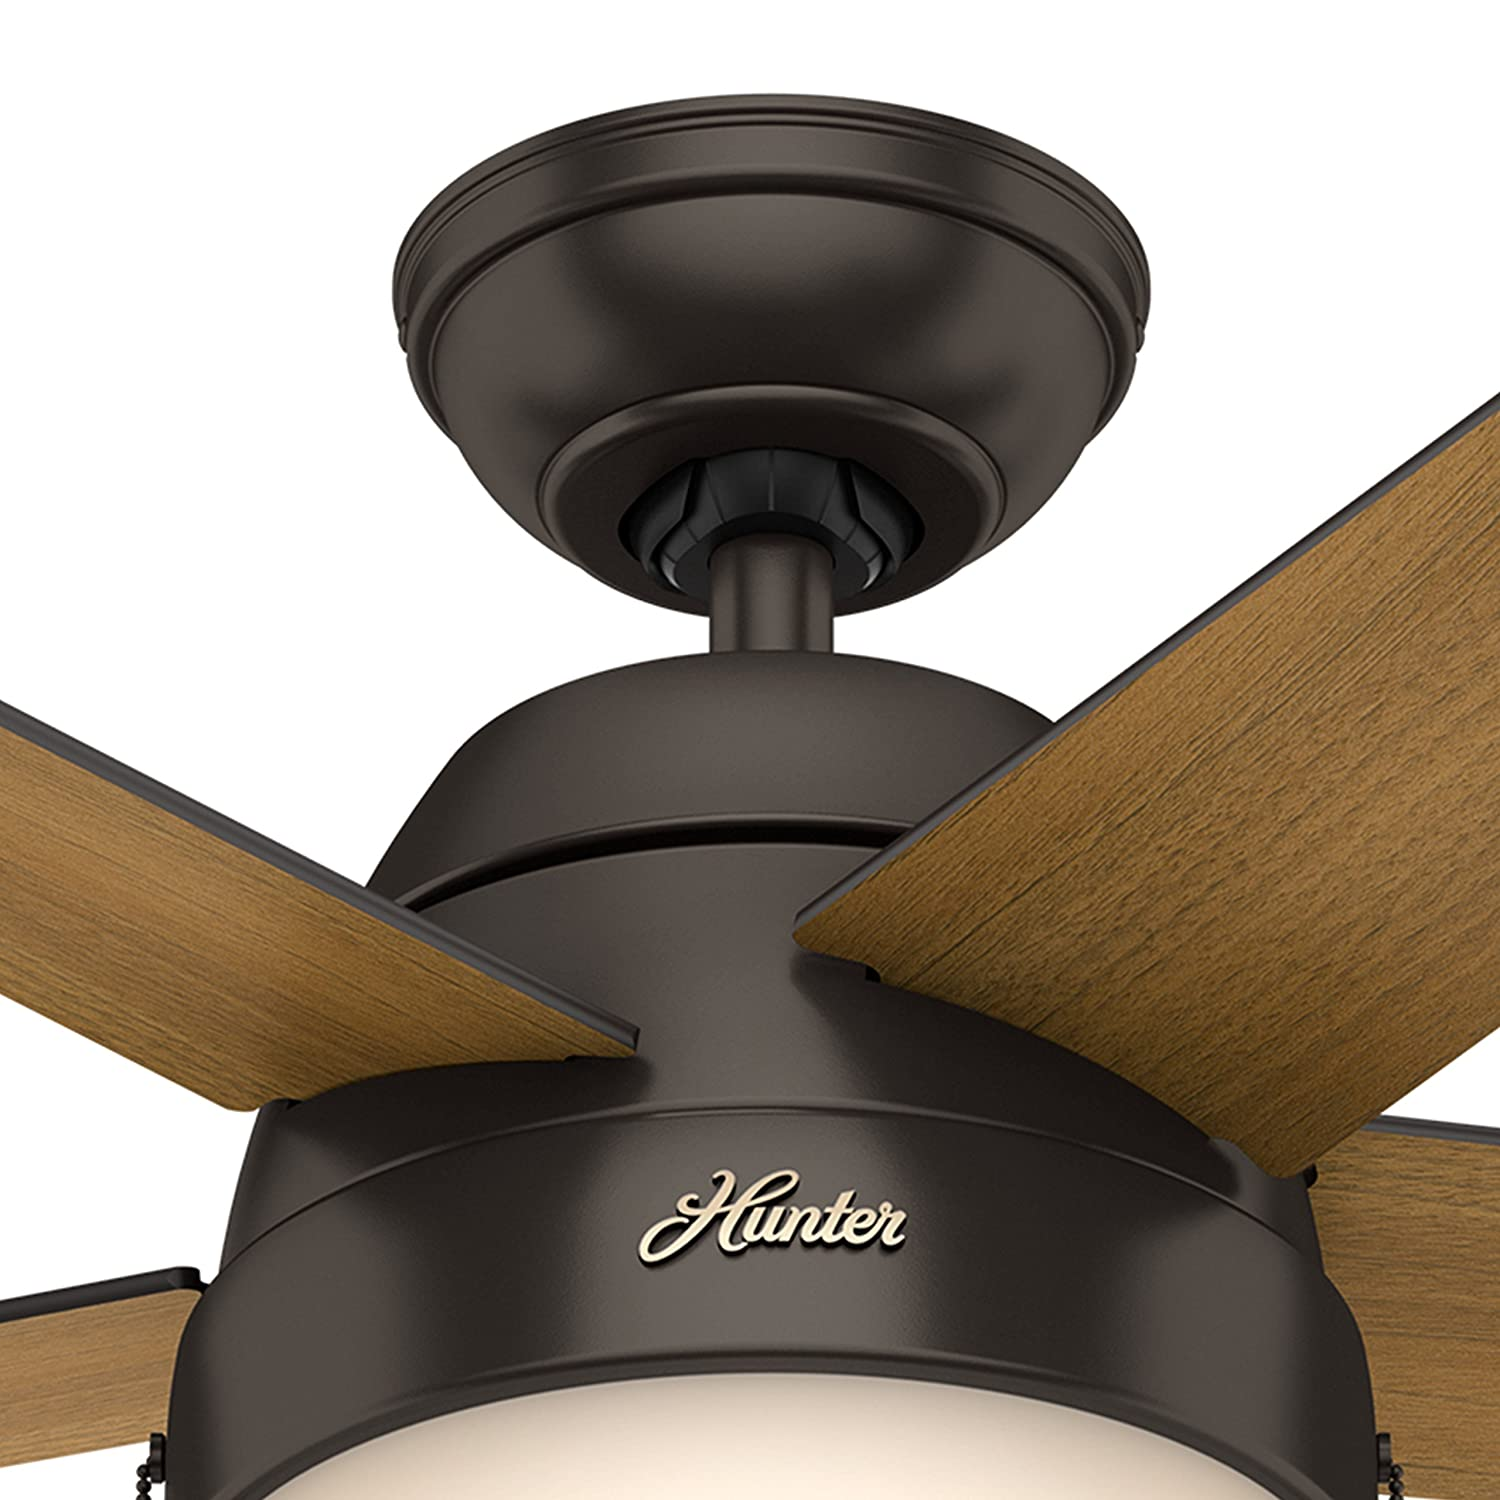 Hunter Fan 46 inch Contemporary Ceiling Fan with Light in Premier Bronze Renewed Premier Bronze